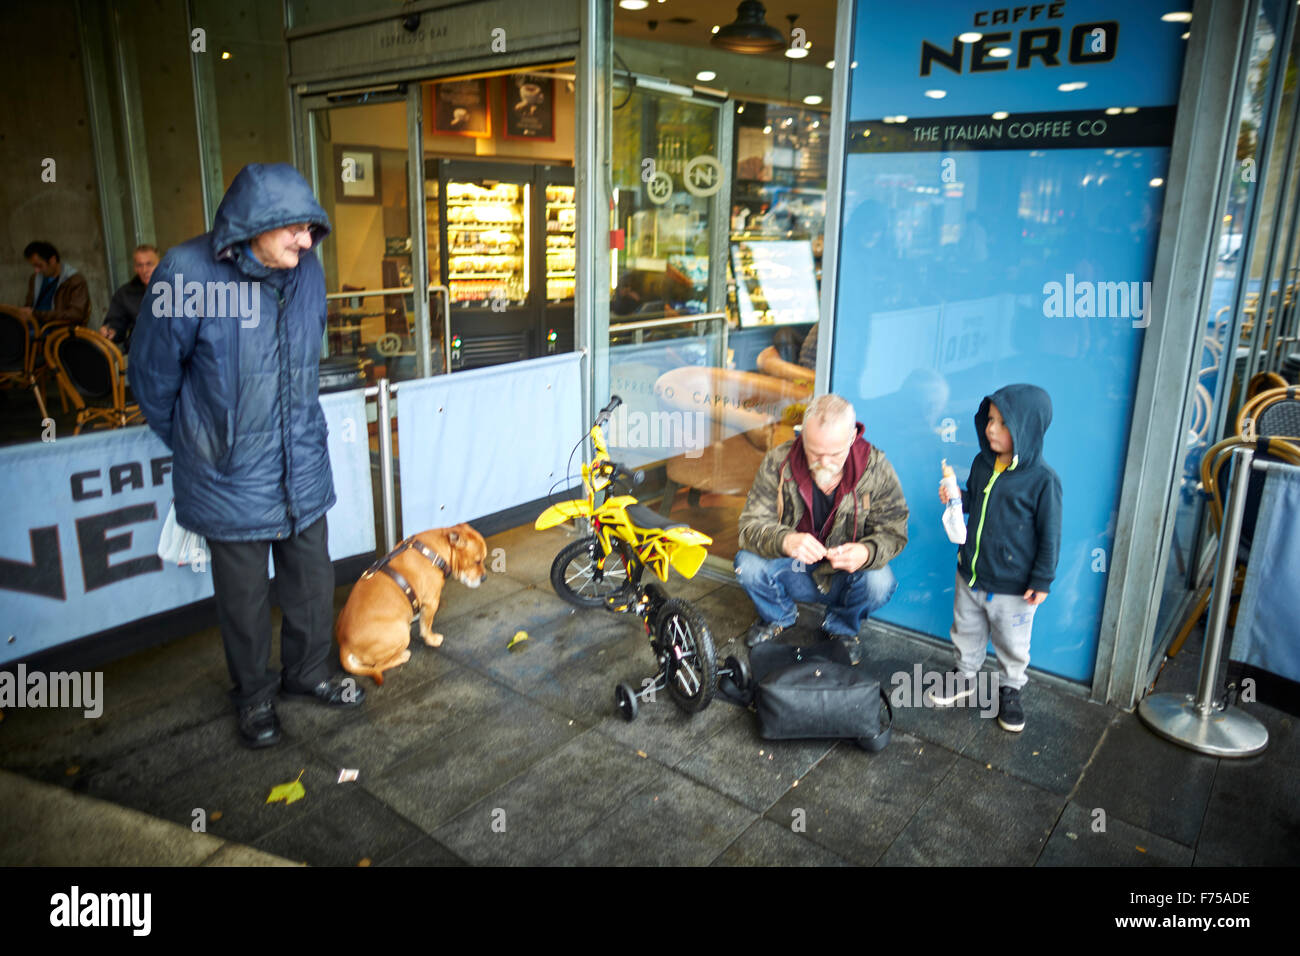 Cafe Nero caffe outside young boy bike waiting dog eating being watched happy Piccadilly Gardens Manchester  Man - Stock Image